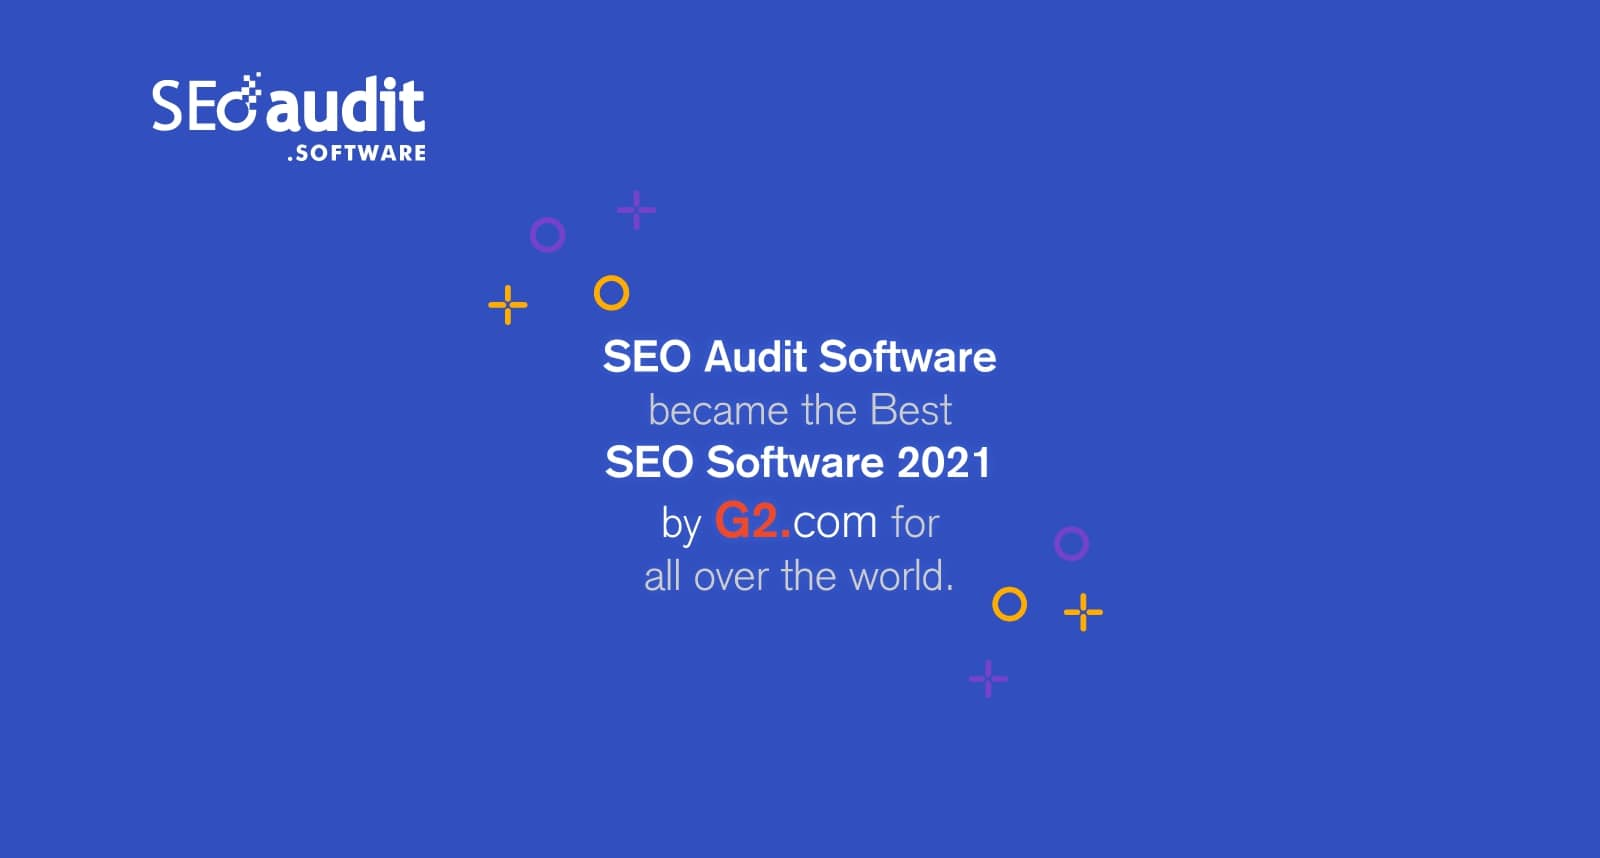 The Best SEO Software 2021 by G2 com for all over the world